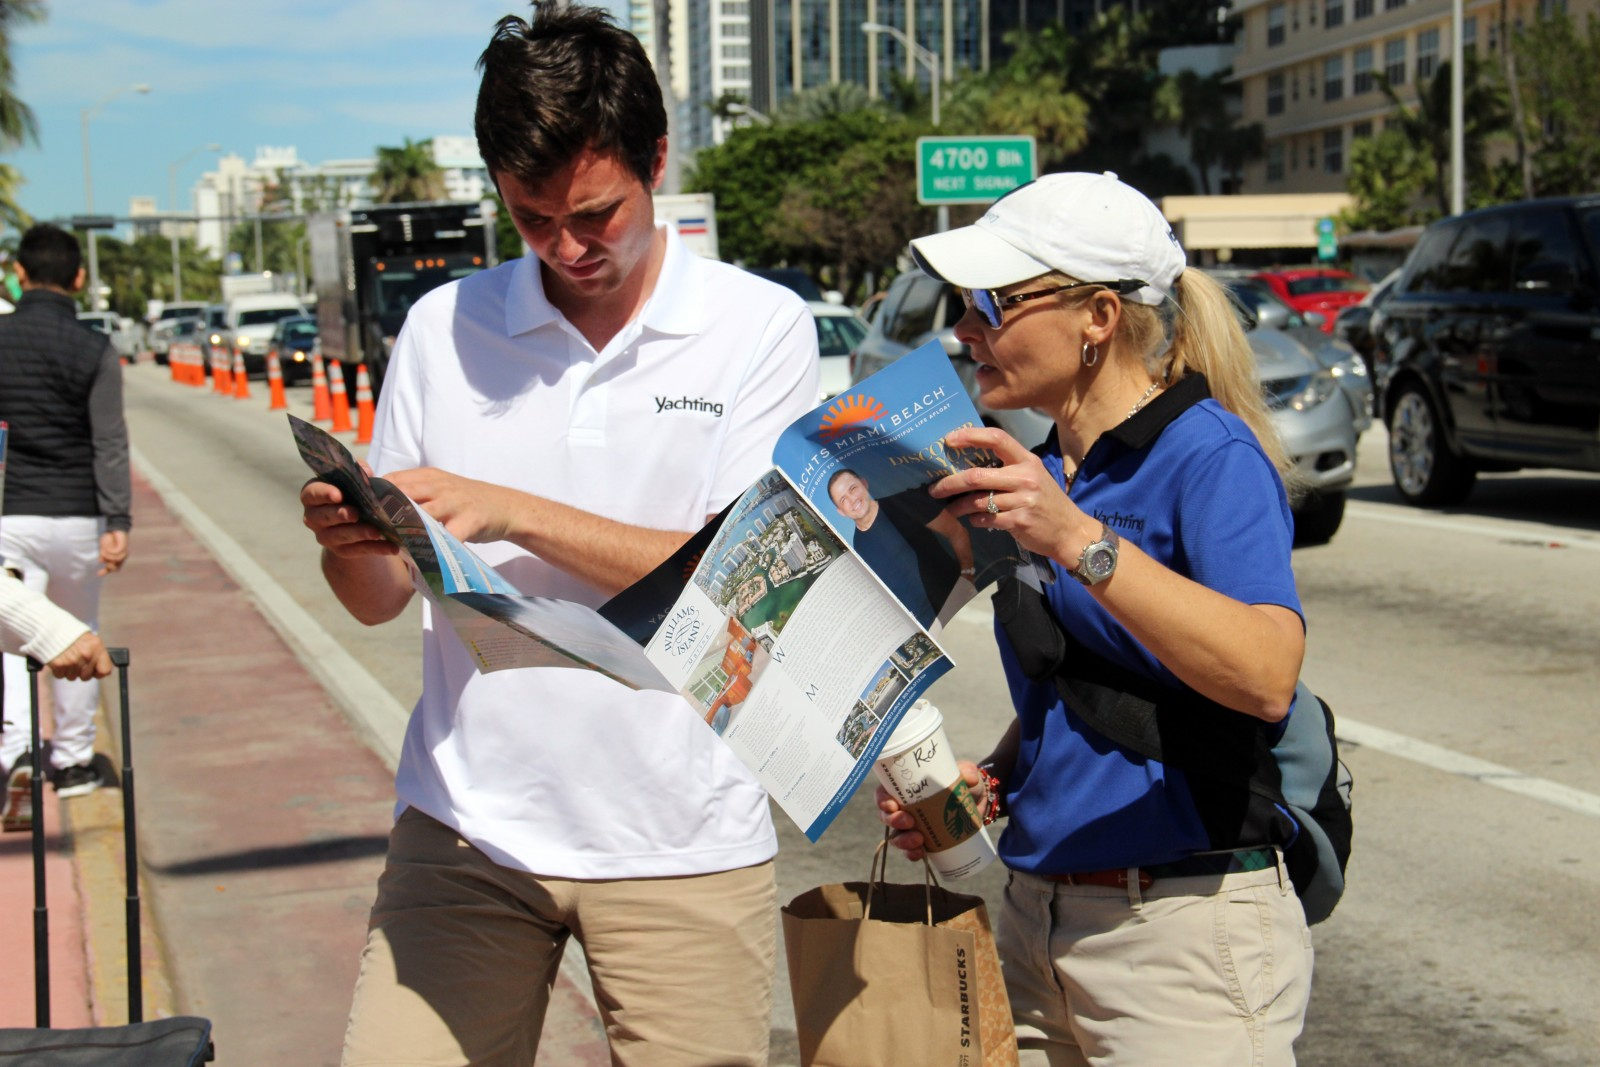 Yachts Miami Beach attendees try to orient themselves using a map of the event. Photo by Suzette Cook